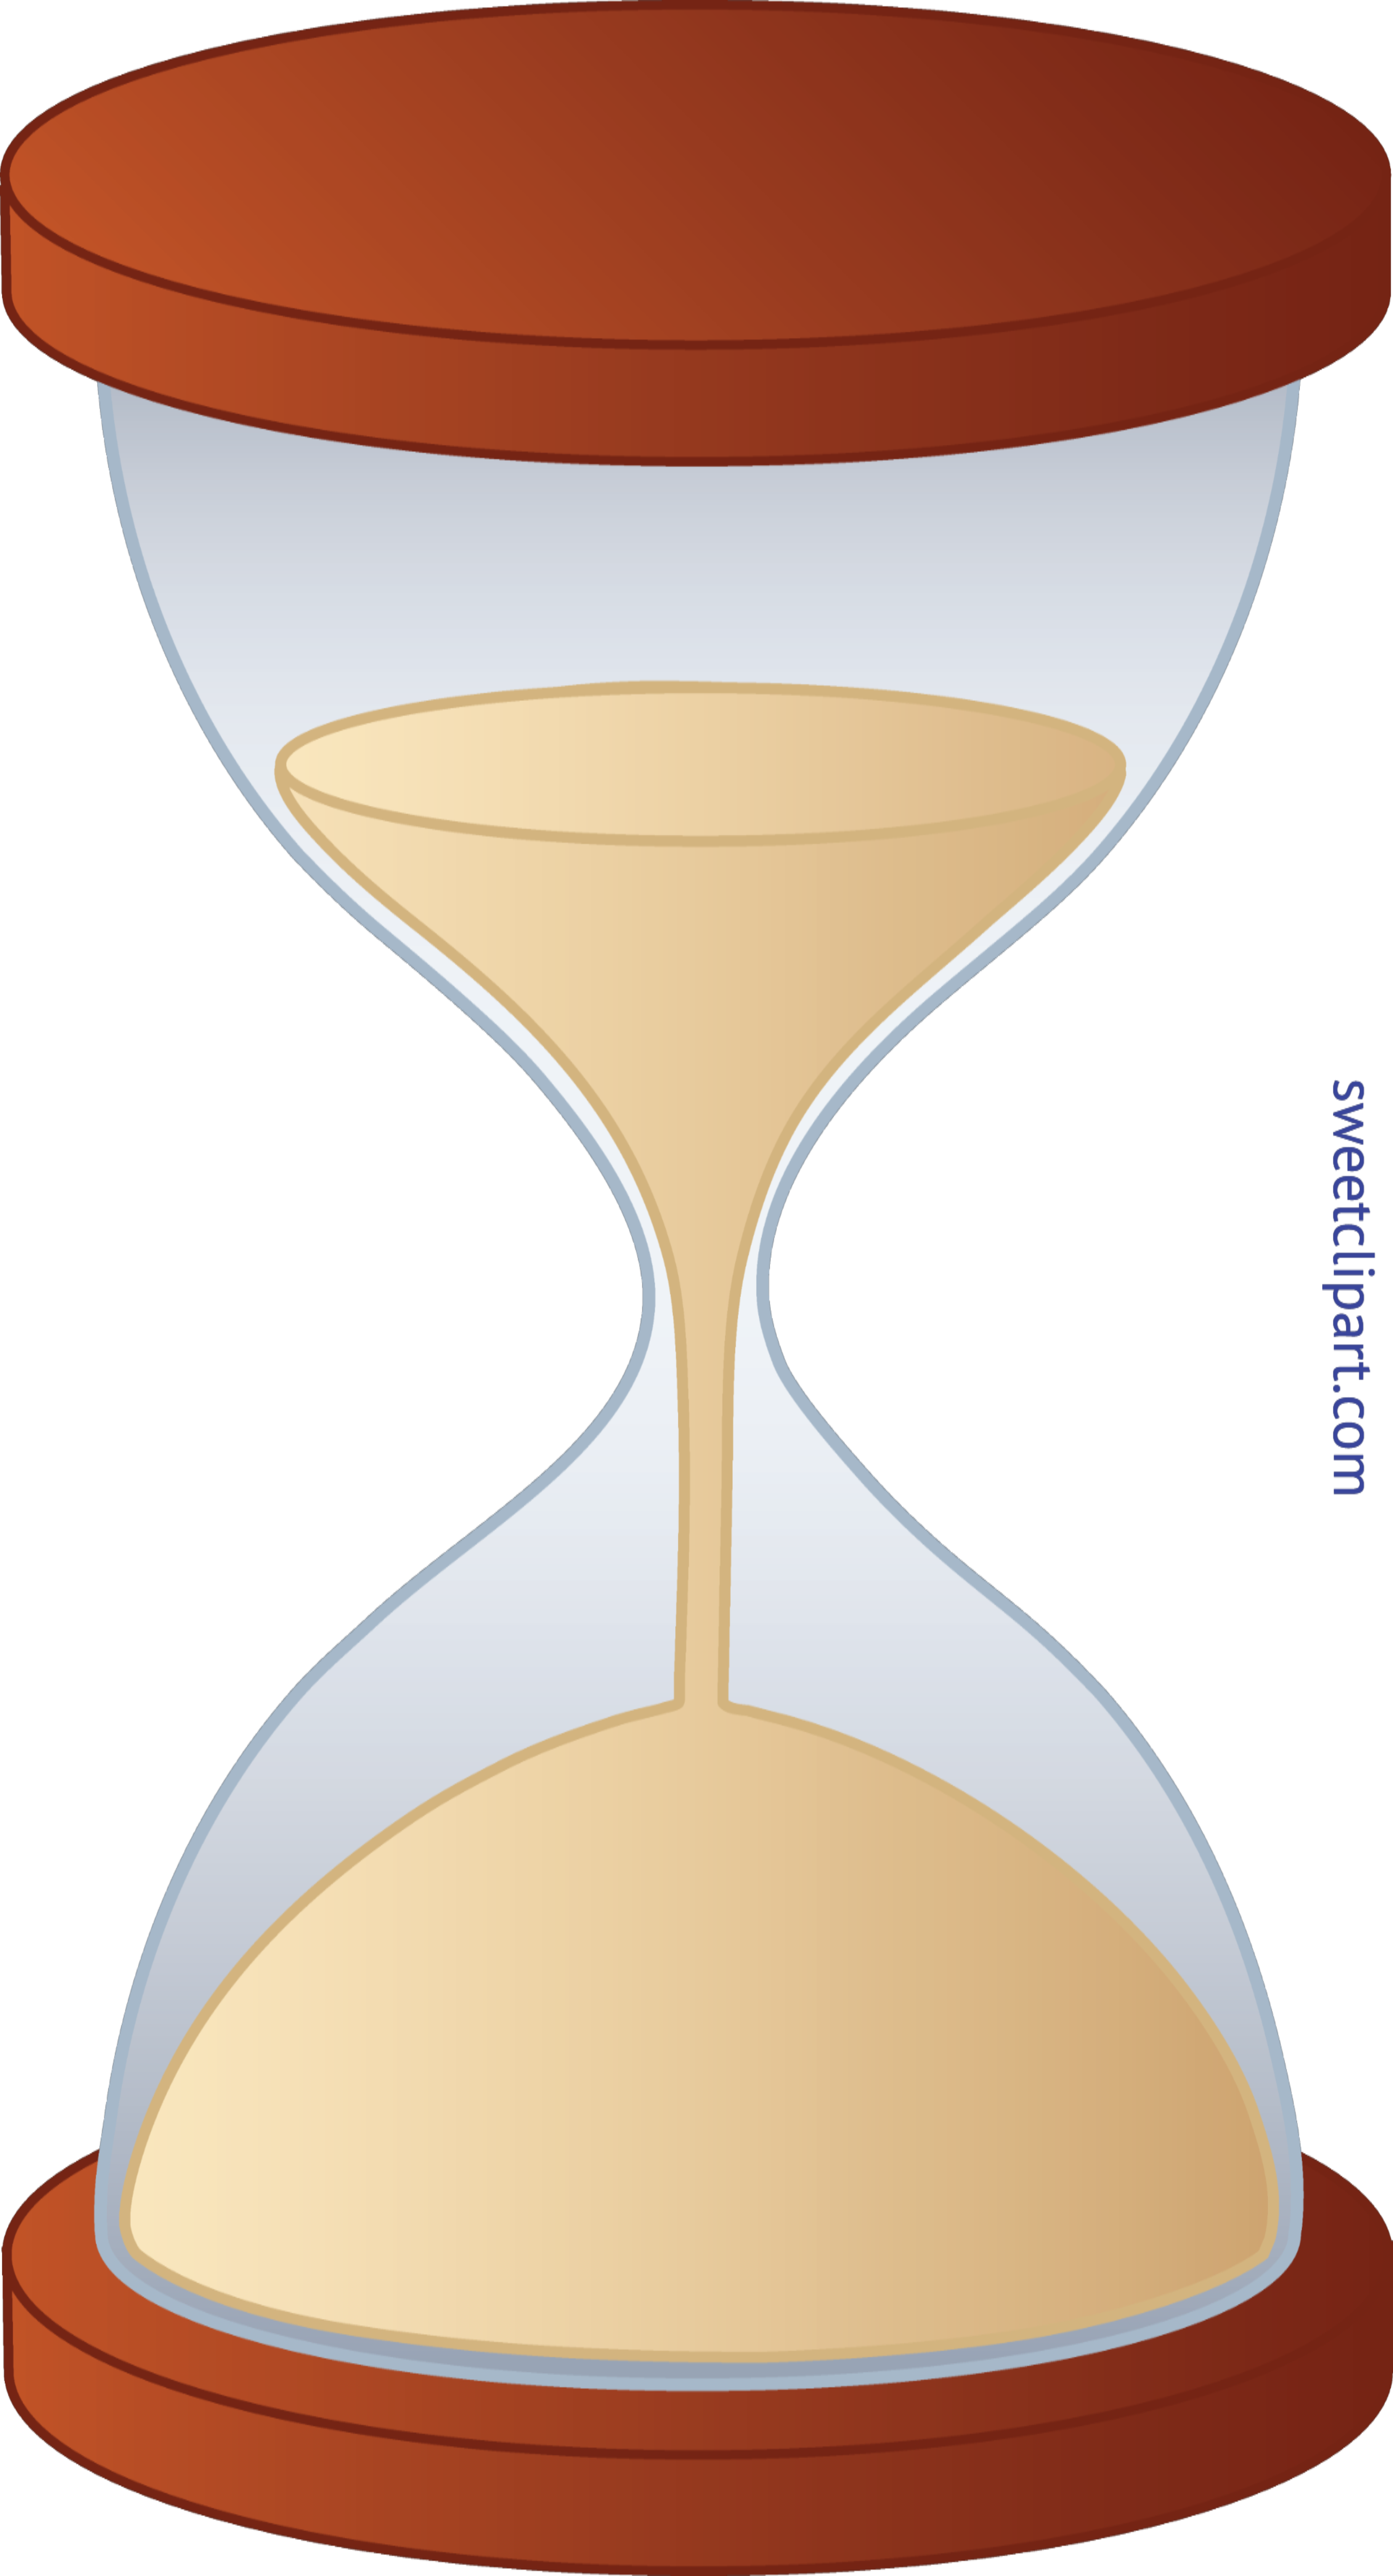 clip freeuse download Hourglass clipart. Clip art sweet.